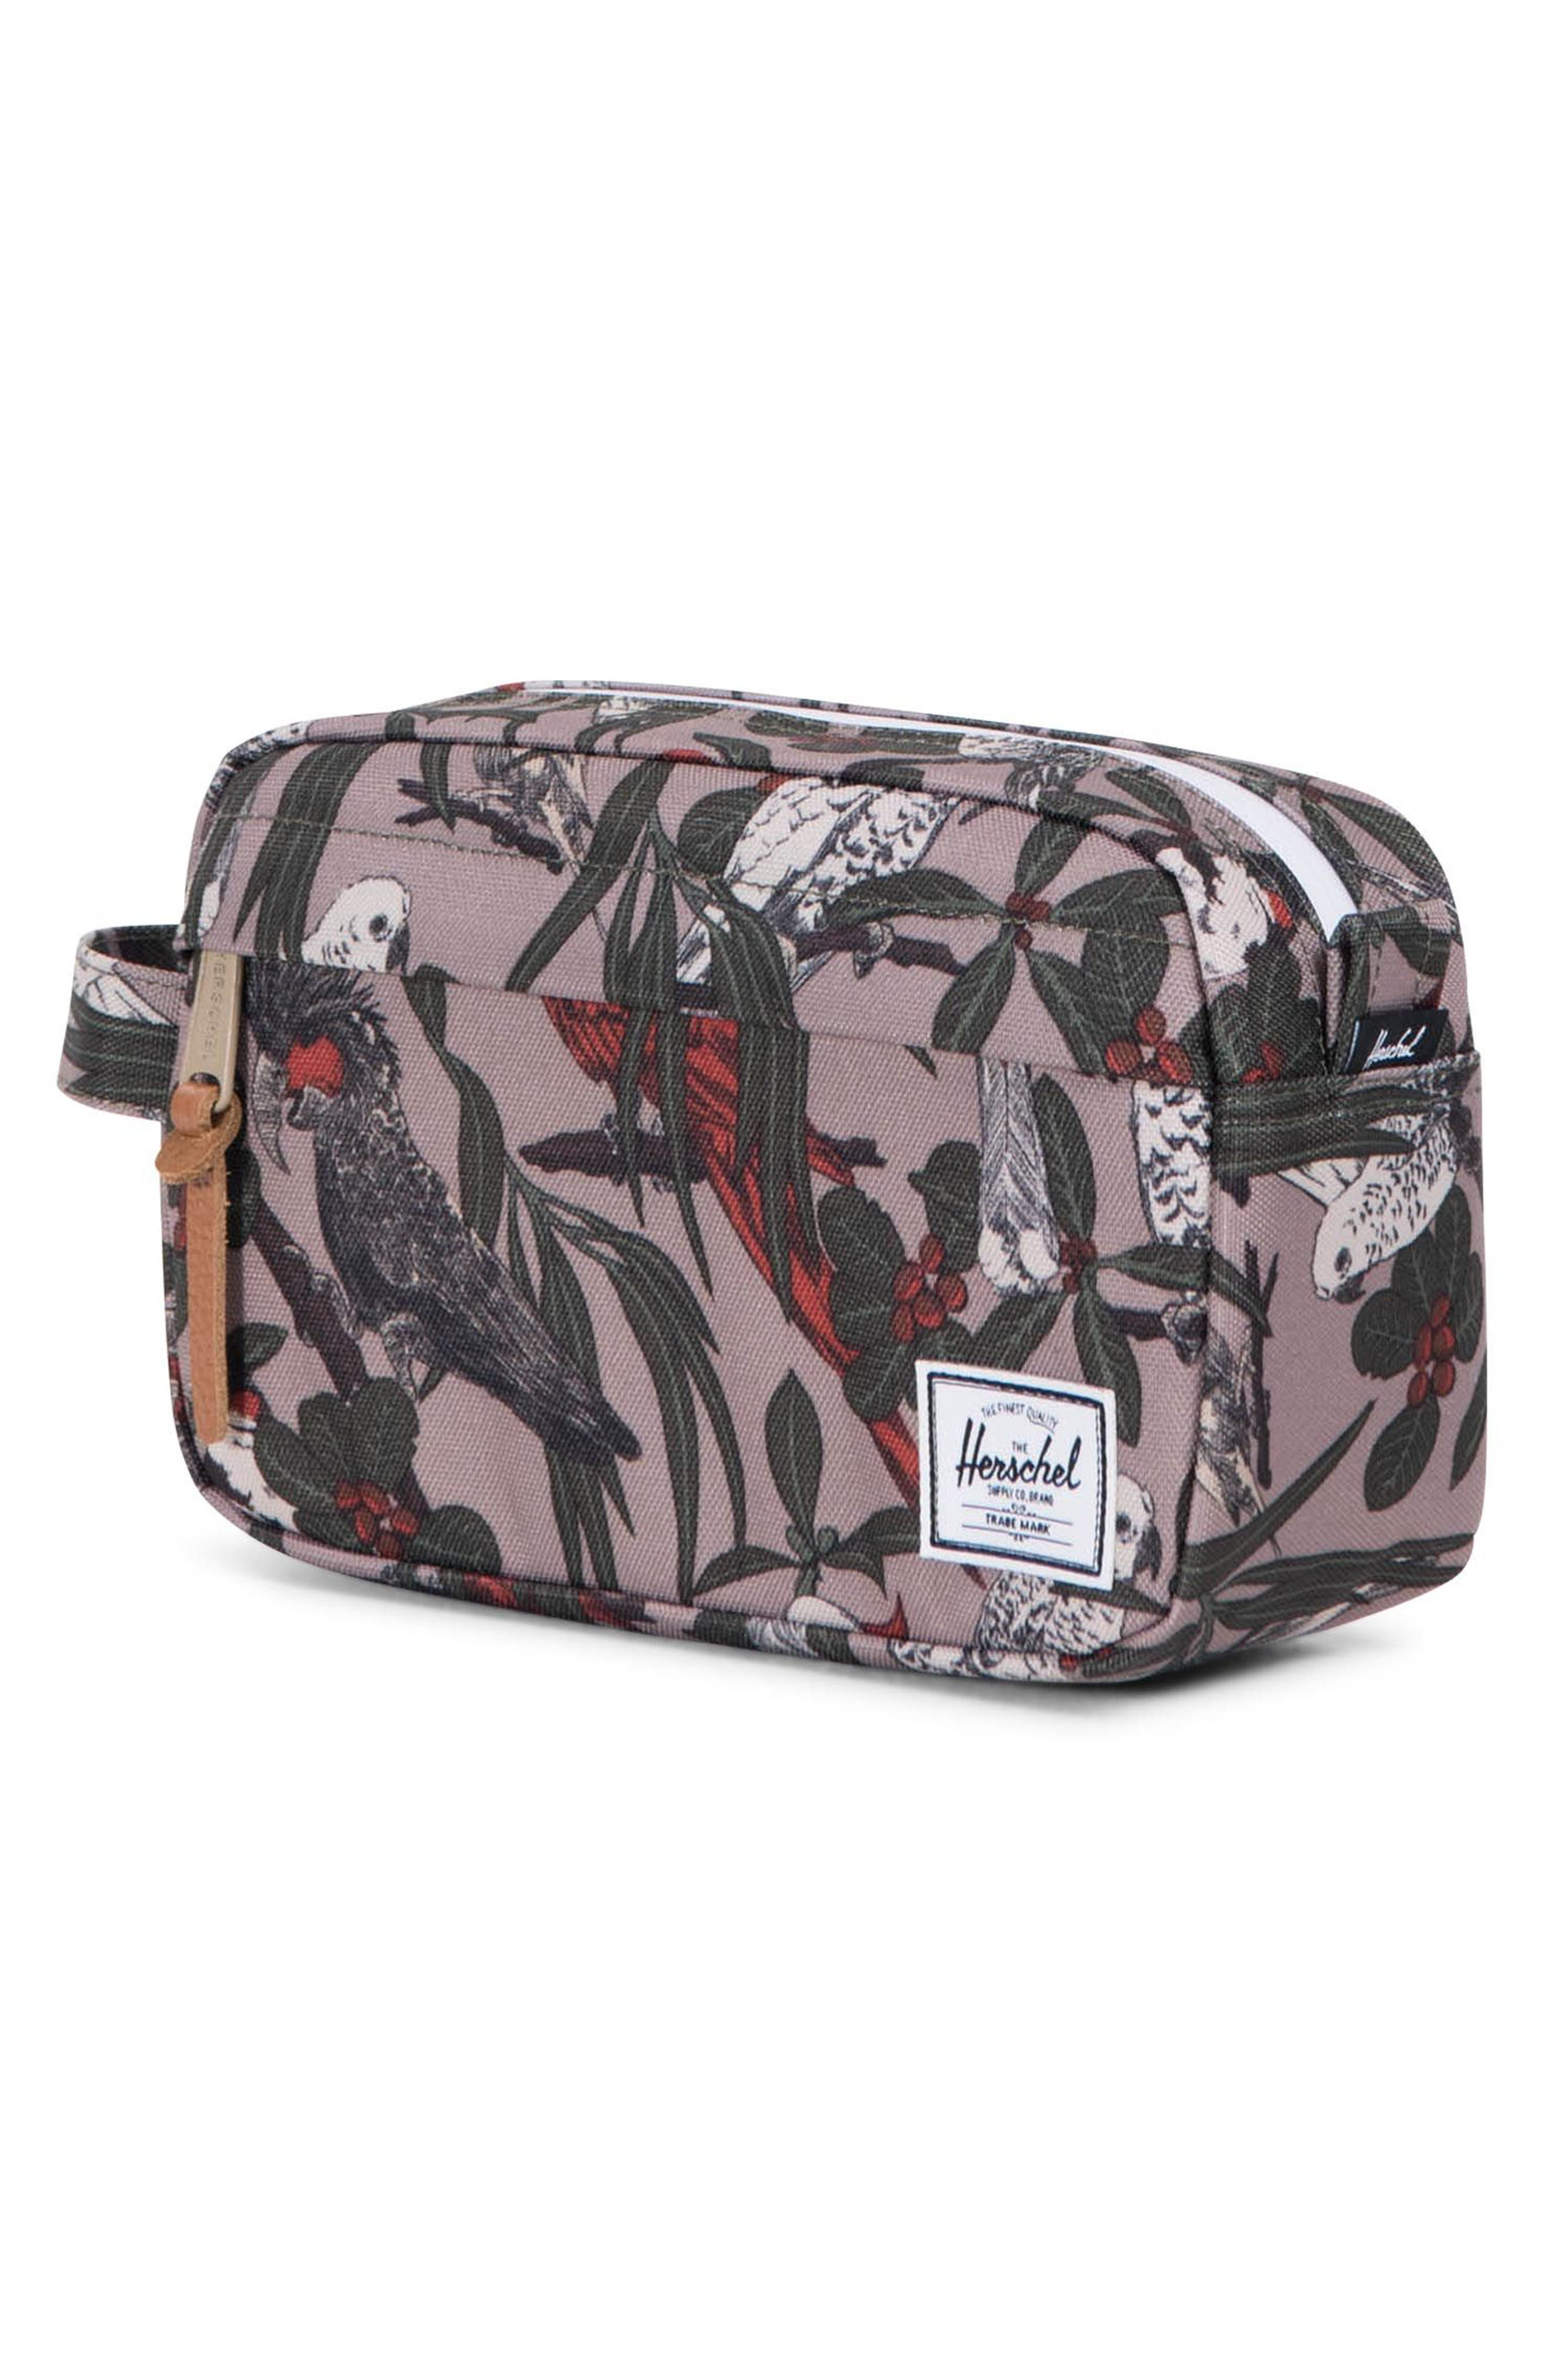 Carry-On Travel Kit,                             Main thumbnail 1, color,                             Brindle Parlour